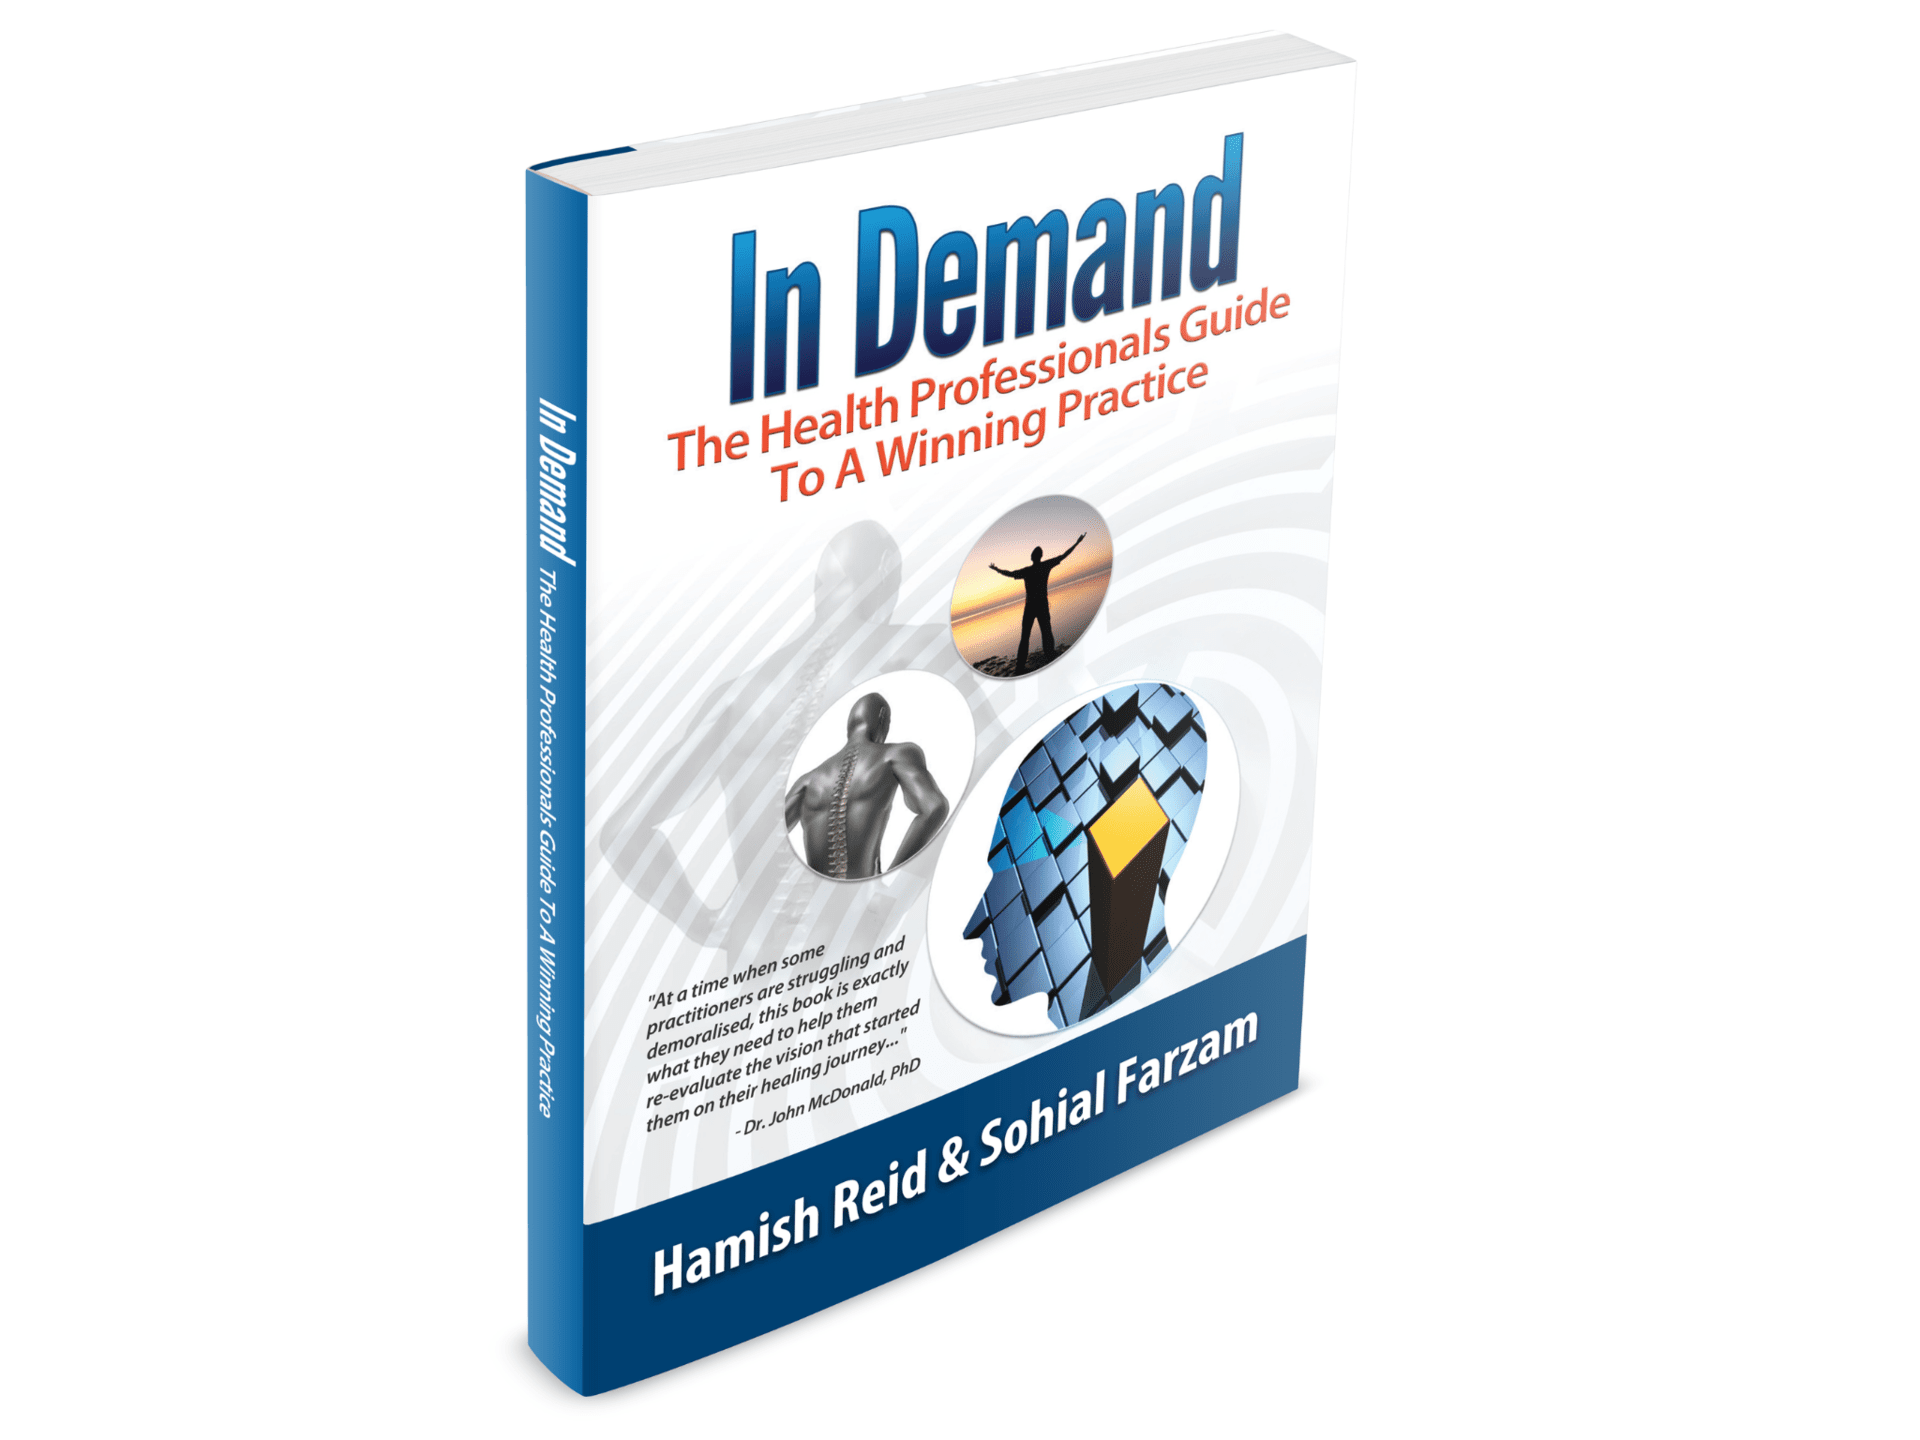 Book: In Demand, The Health Professionals Guide To A Winning Practice